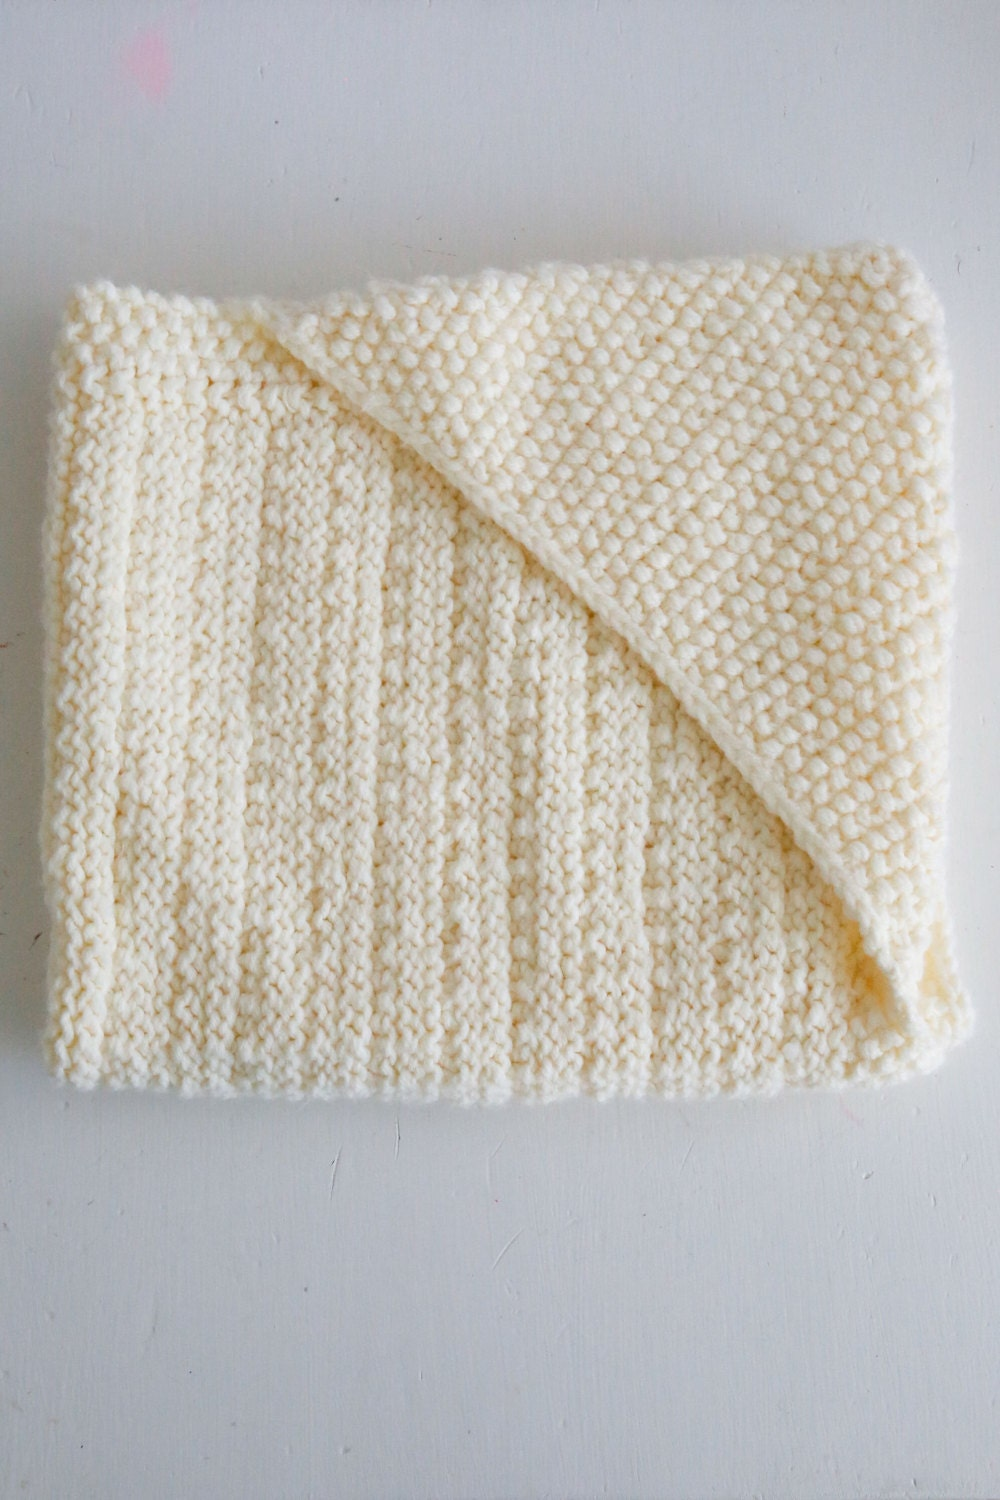 Newborn Knitting Patterns Free For Babies : Hand-knit Hooded Baby Blanket Ivory White Soft yarn